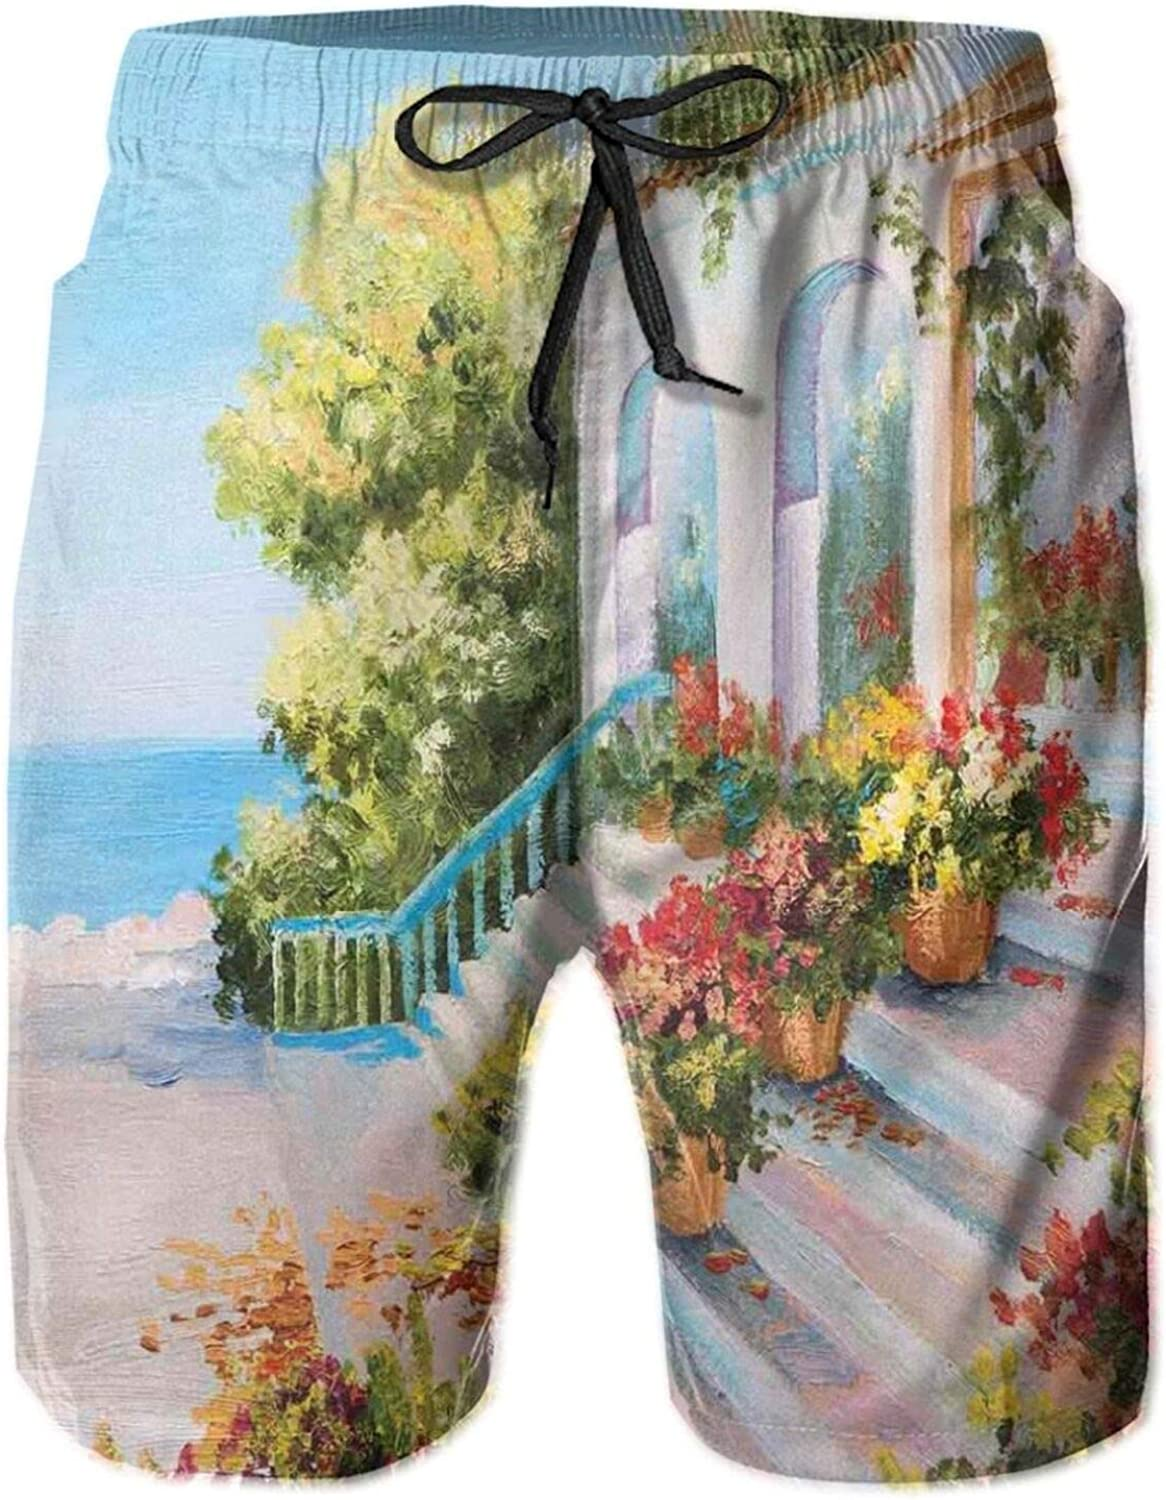 Sea View from The Terrace of A Retro House Art Flowers Old Stairs Mens Swim Trucks Shorts with Mesh Lining,M